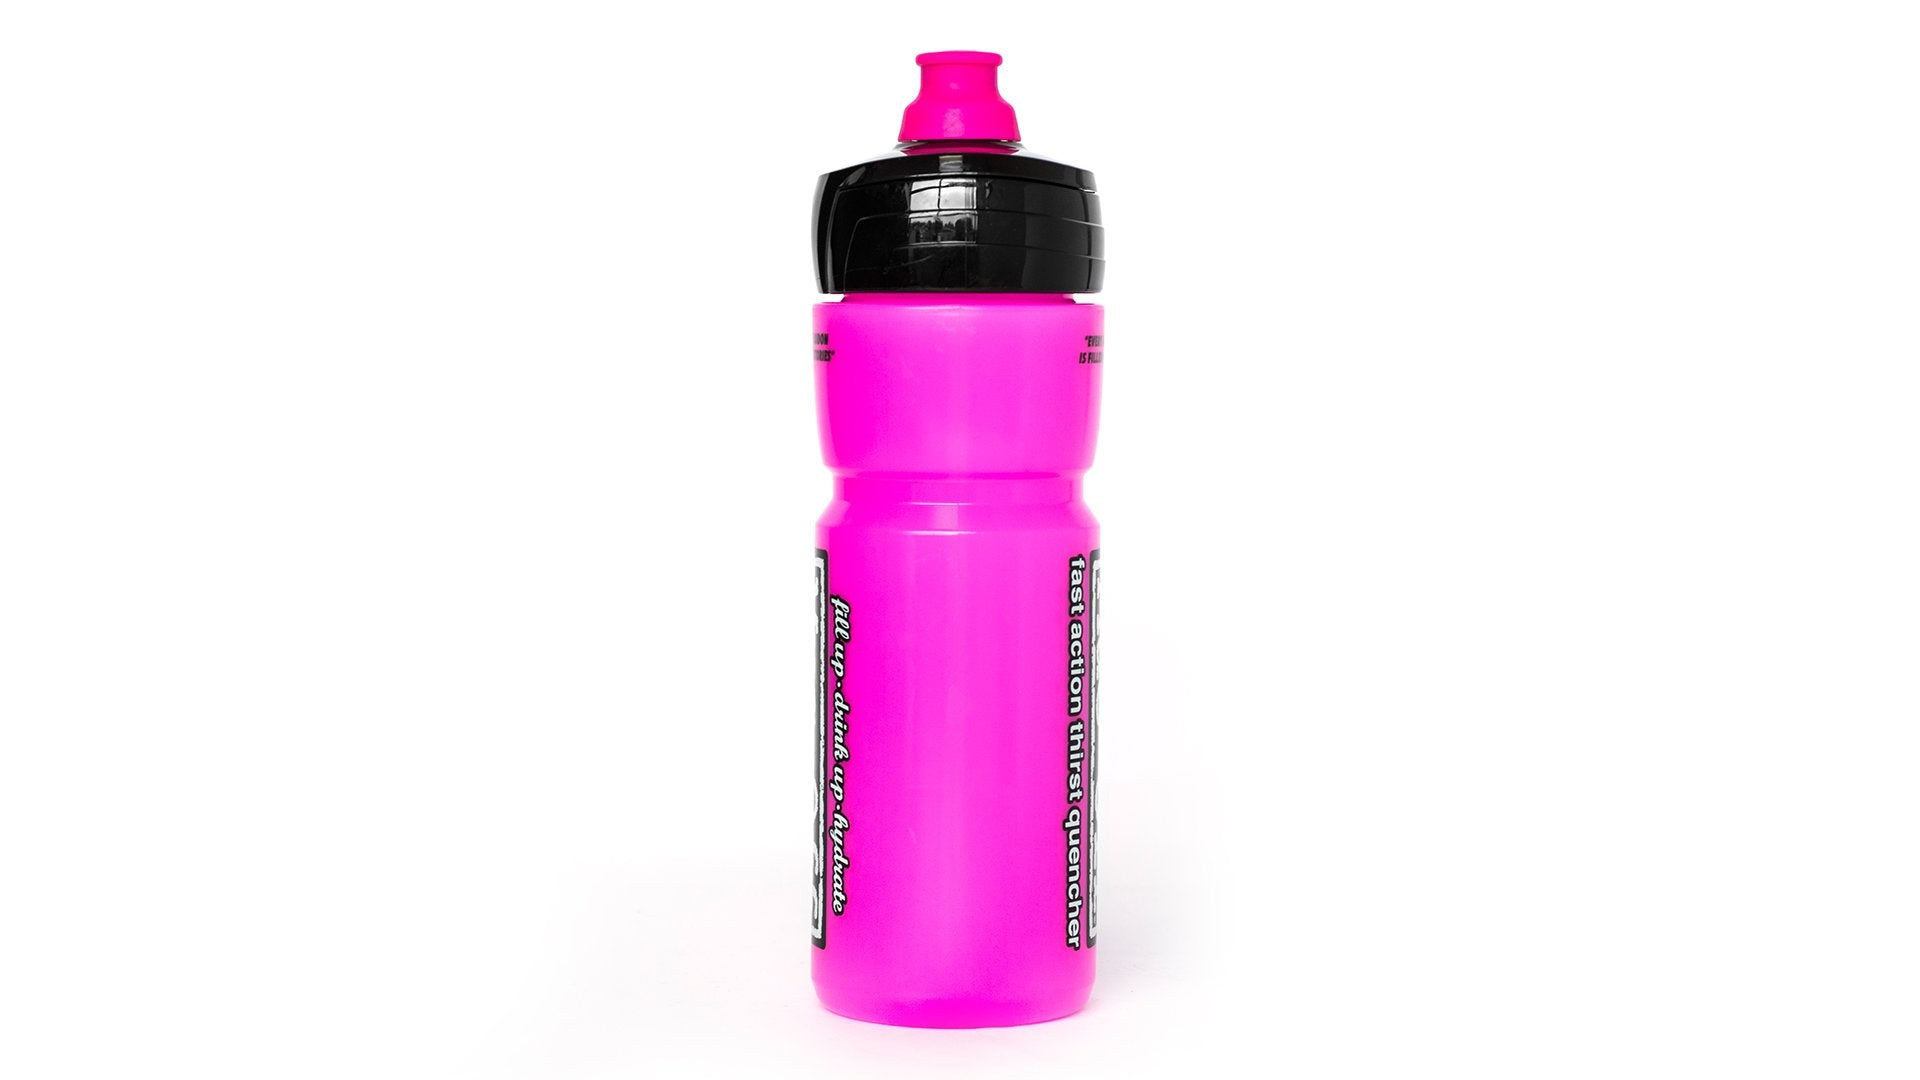 Muc-Off Water Bottle - Muc-Off